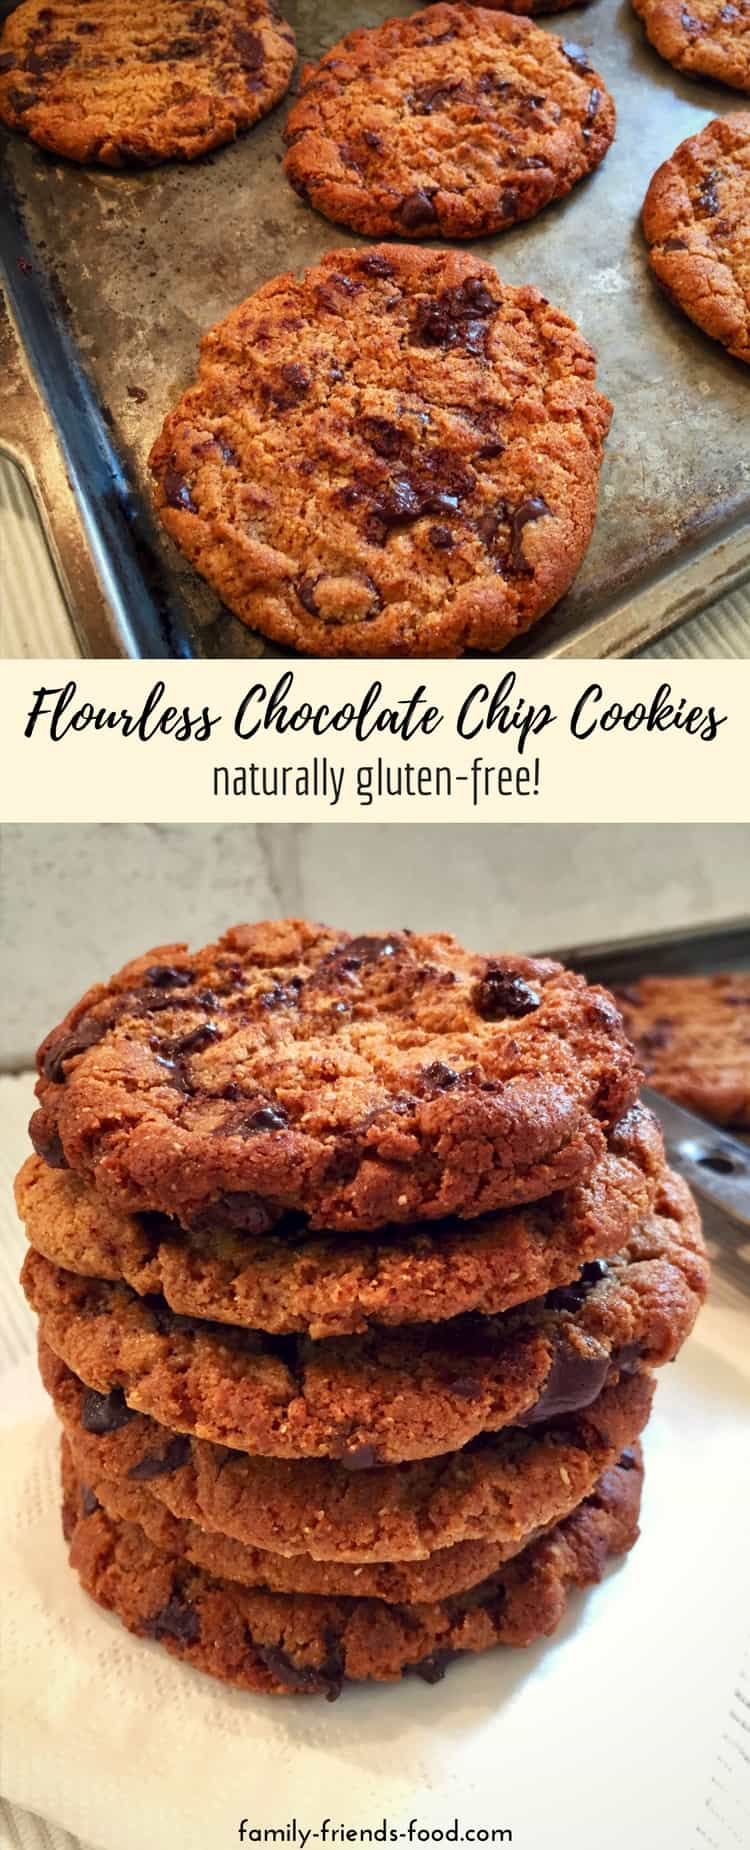 Crispy-edged, chewy-centred, scrumptious chocolate chip cookies made with creamy almond butter so they're naturally gluten free. Easy to make and perfect for Pesach (Passover) or any time!